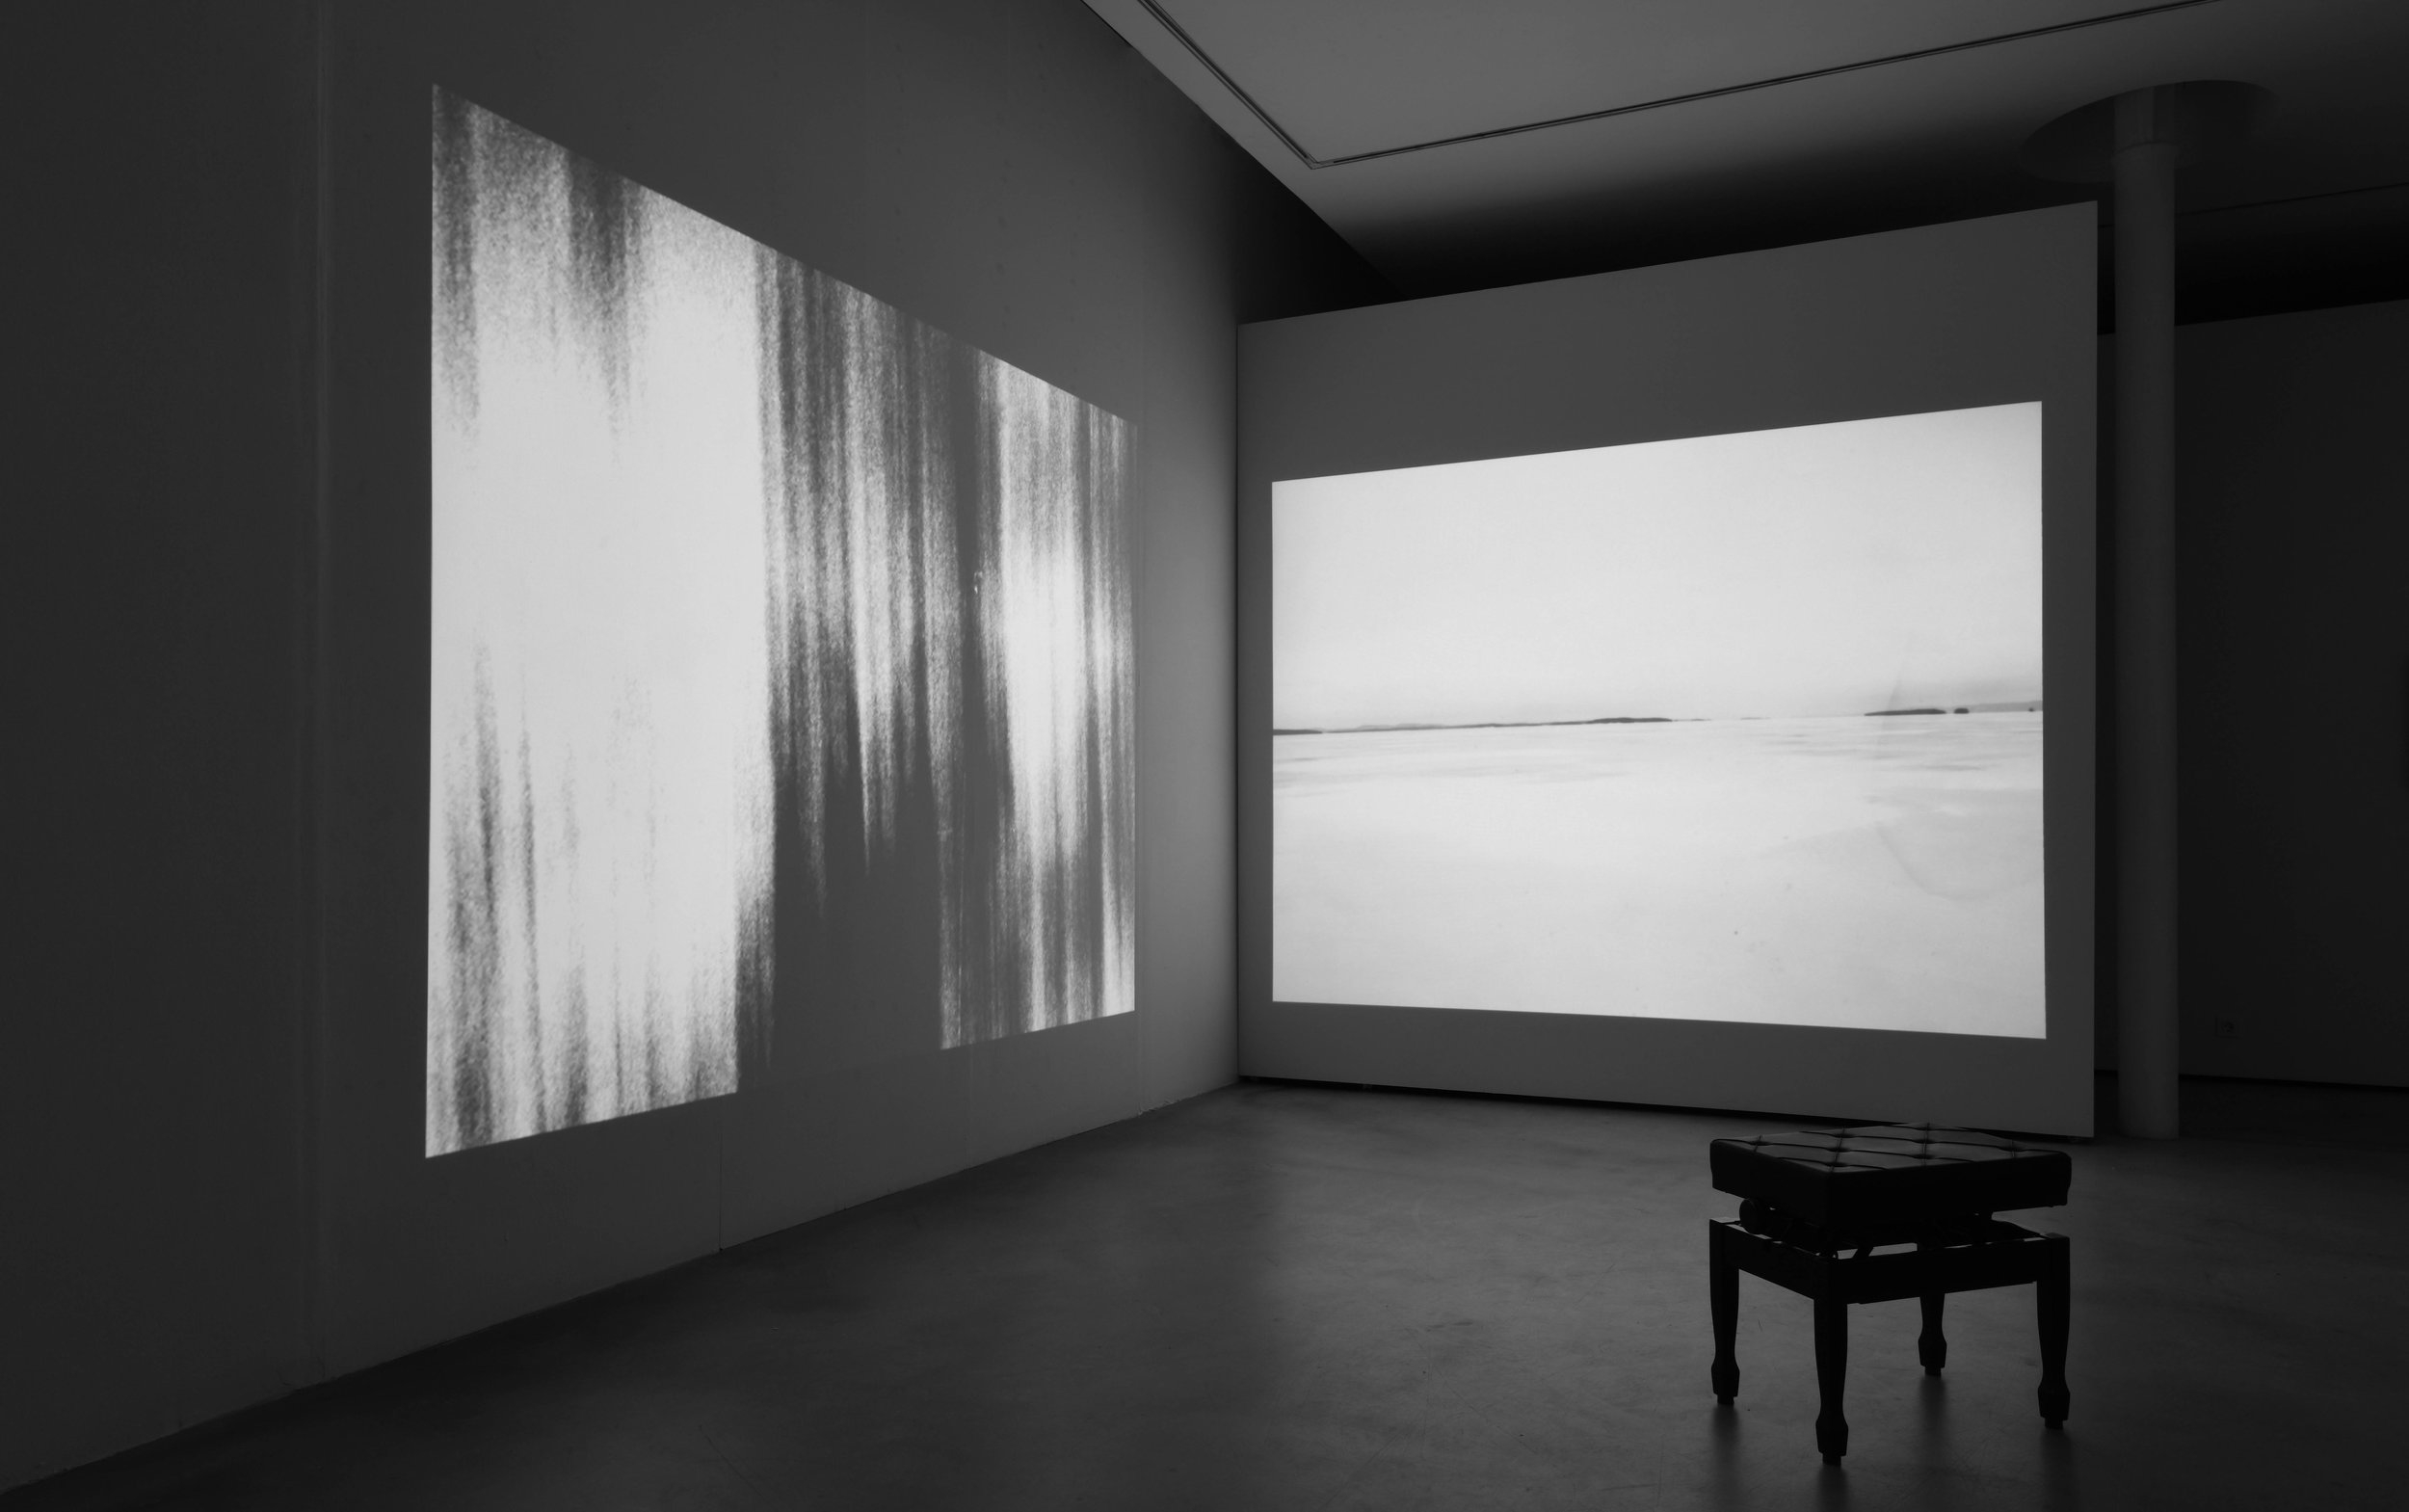 Einsamkeit   2018, 06'47'' black and white, piano stool, 2 projections, 16mm transfered, loop